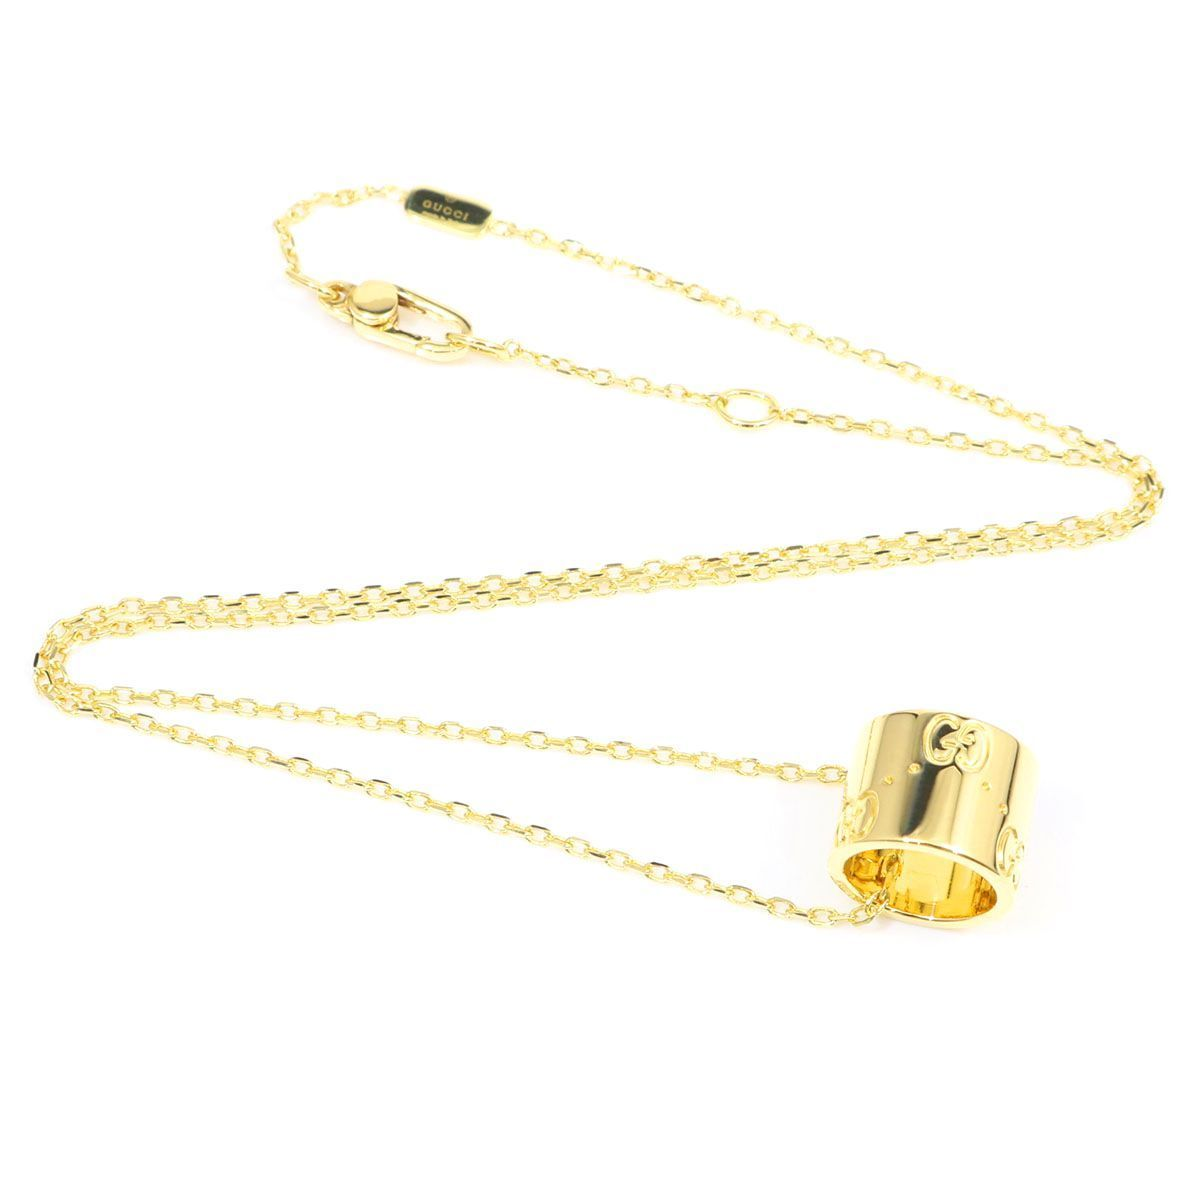 """""Gucci 18K Yellow Gold Icon GG Logo Pendant Chain Necklace"""""" 2001887"